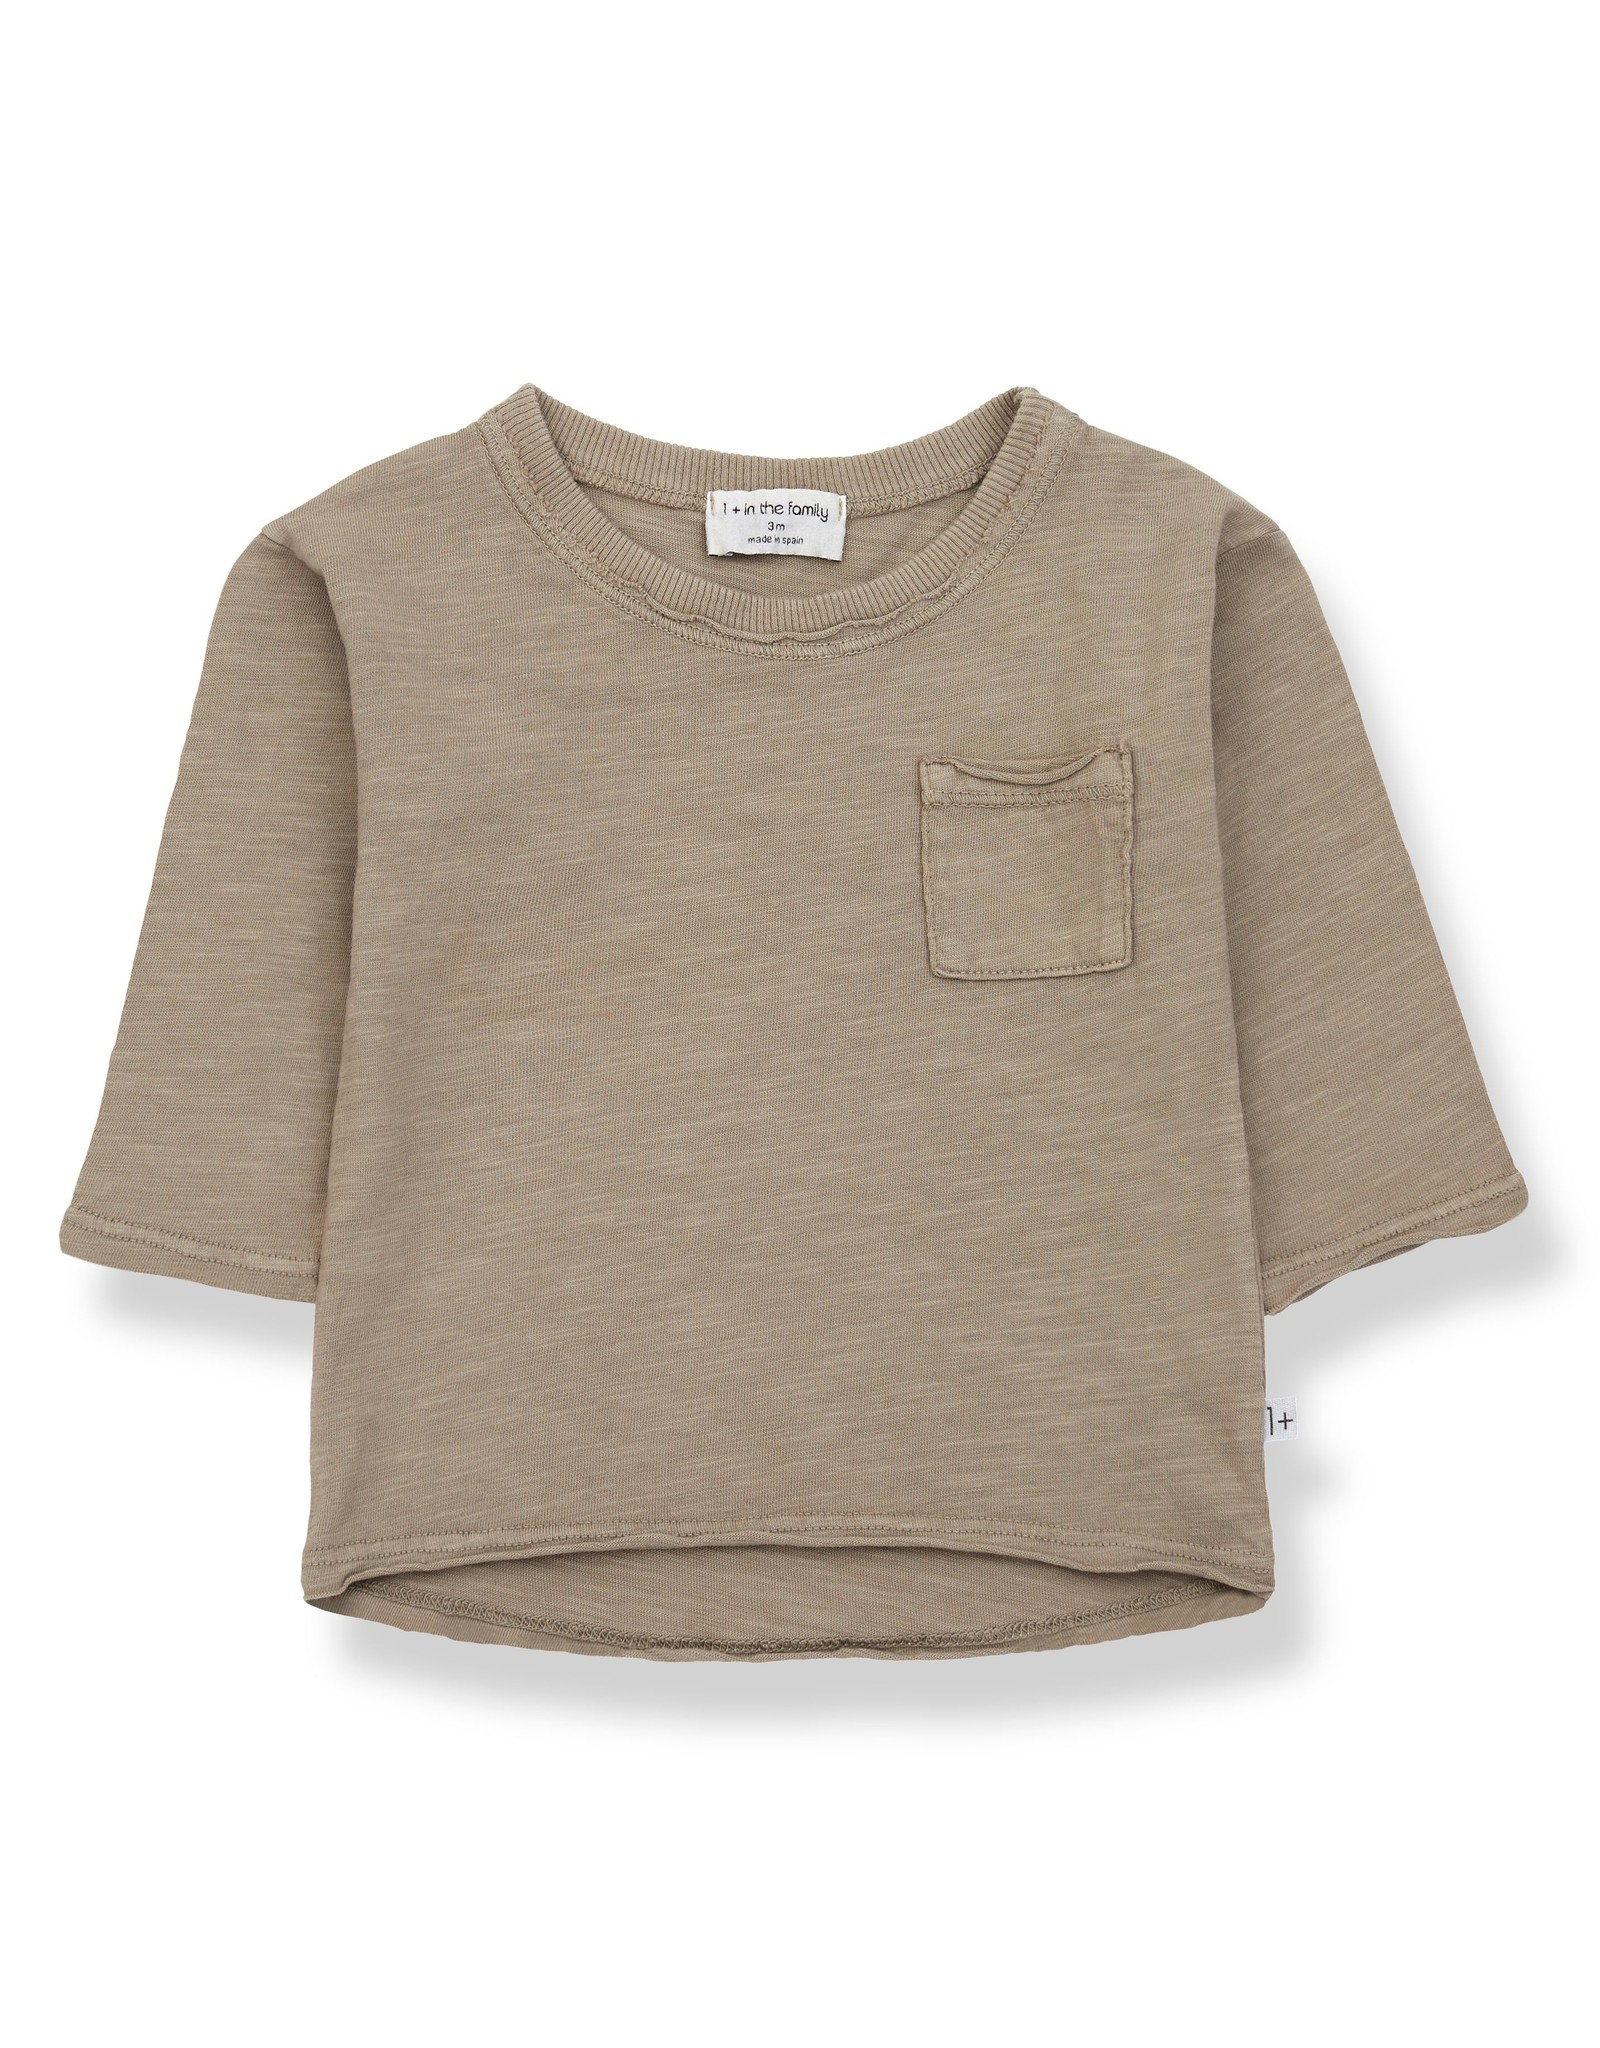 1+ In The Family 1+ in the Family PERE t-shirt met lange mouwen khaki